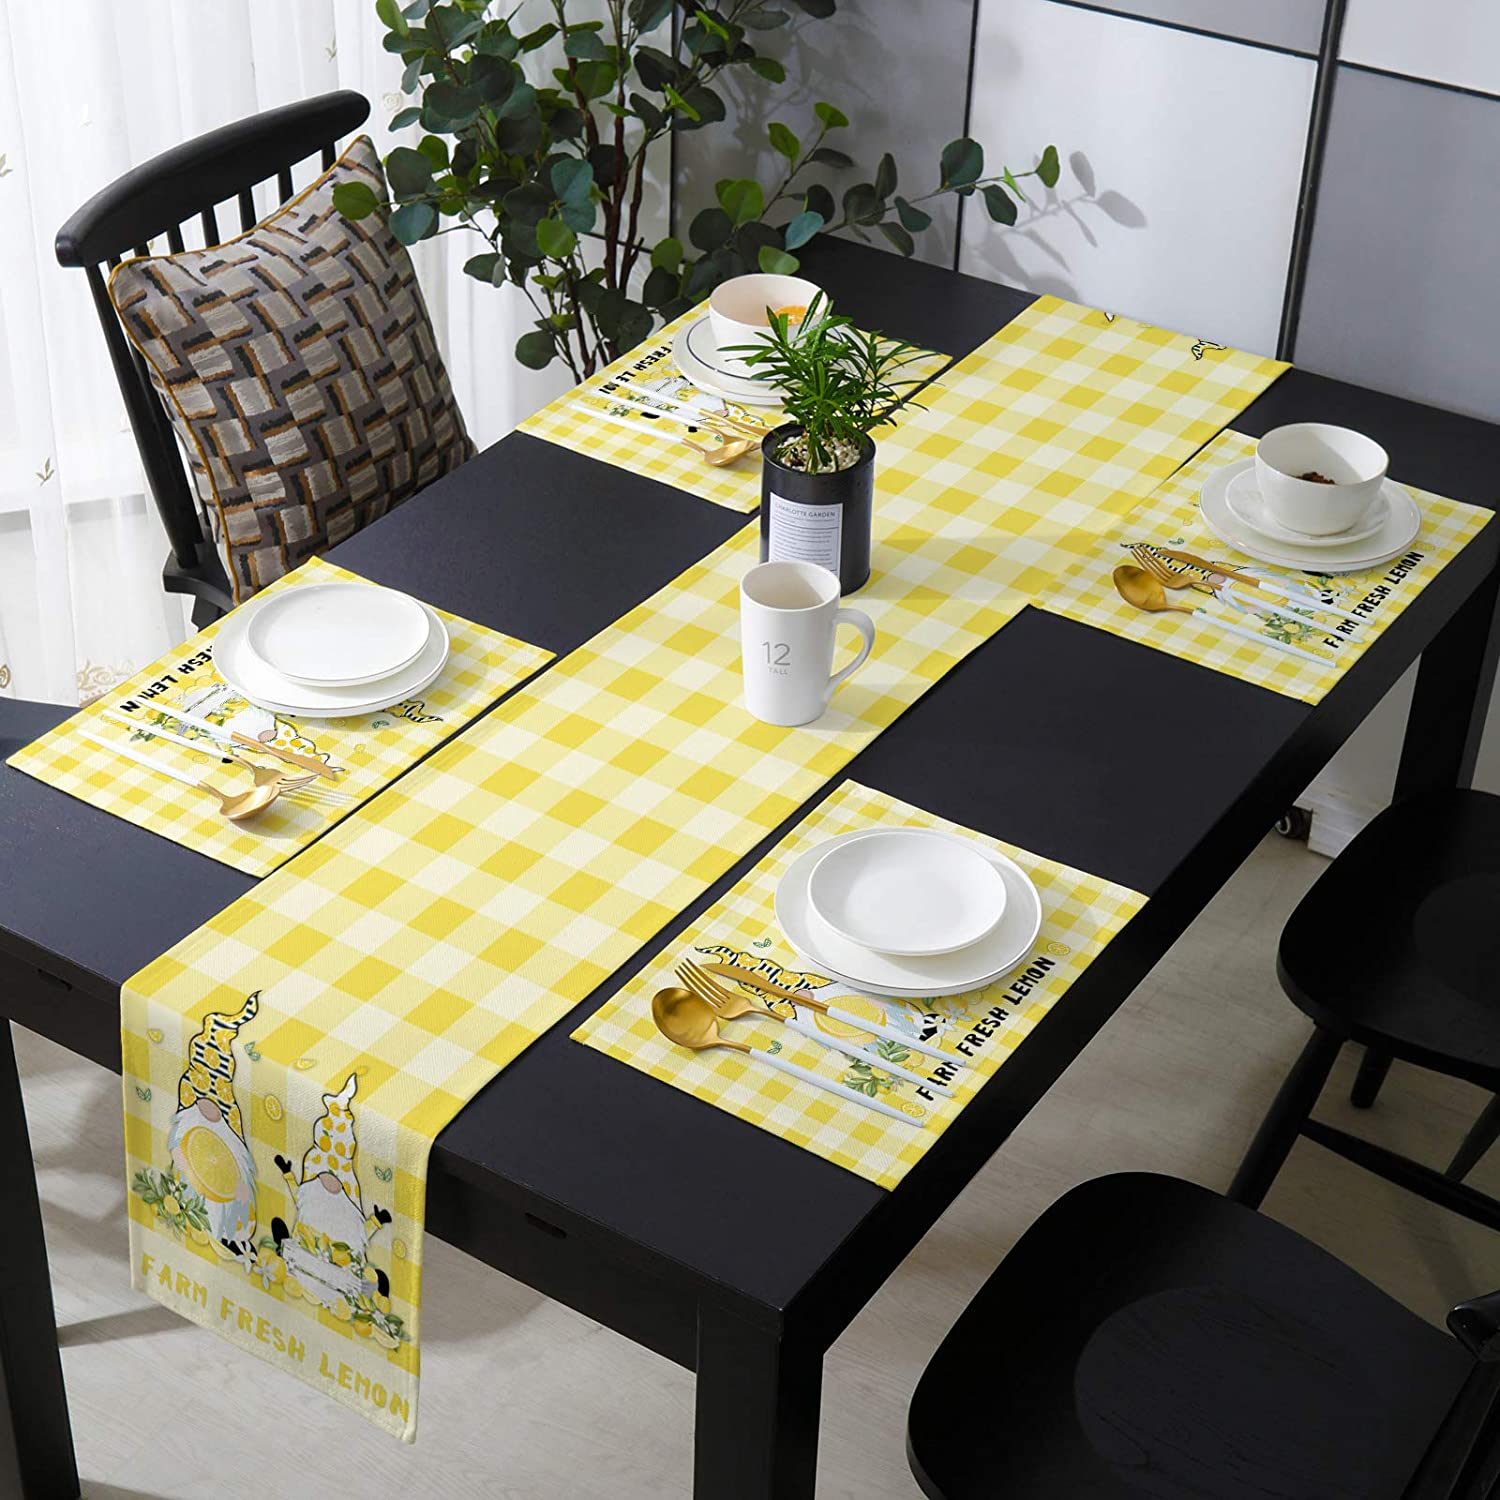 MuswannaA Placemats and Table Runner Dining Easy-to-use B Manufacturer regenerated product Set Cute for